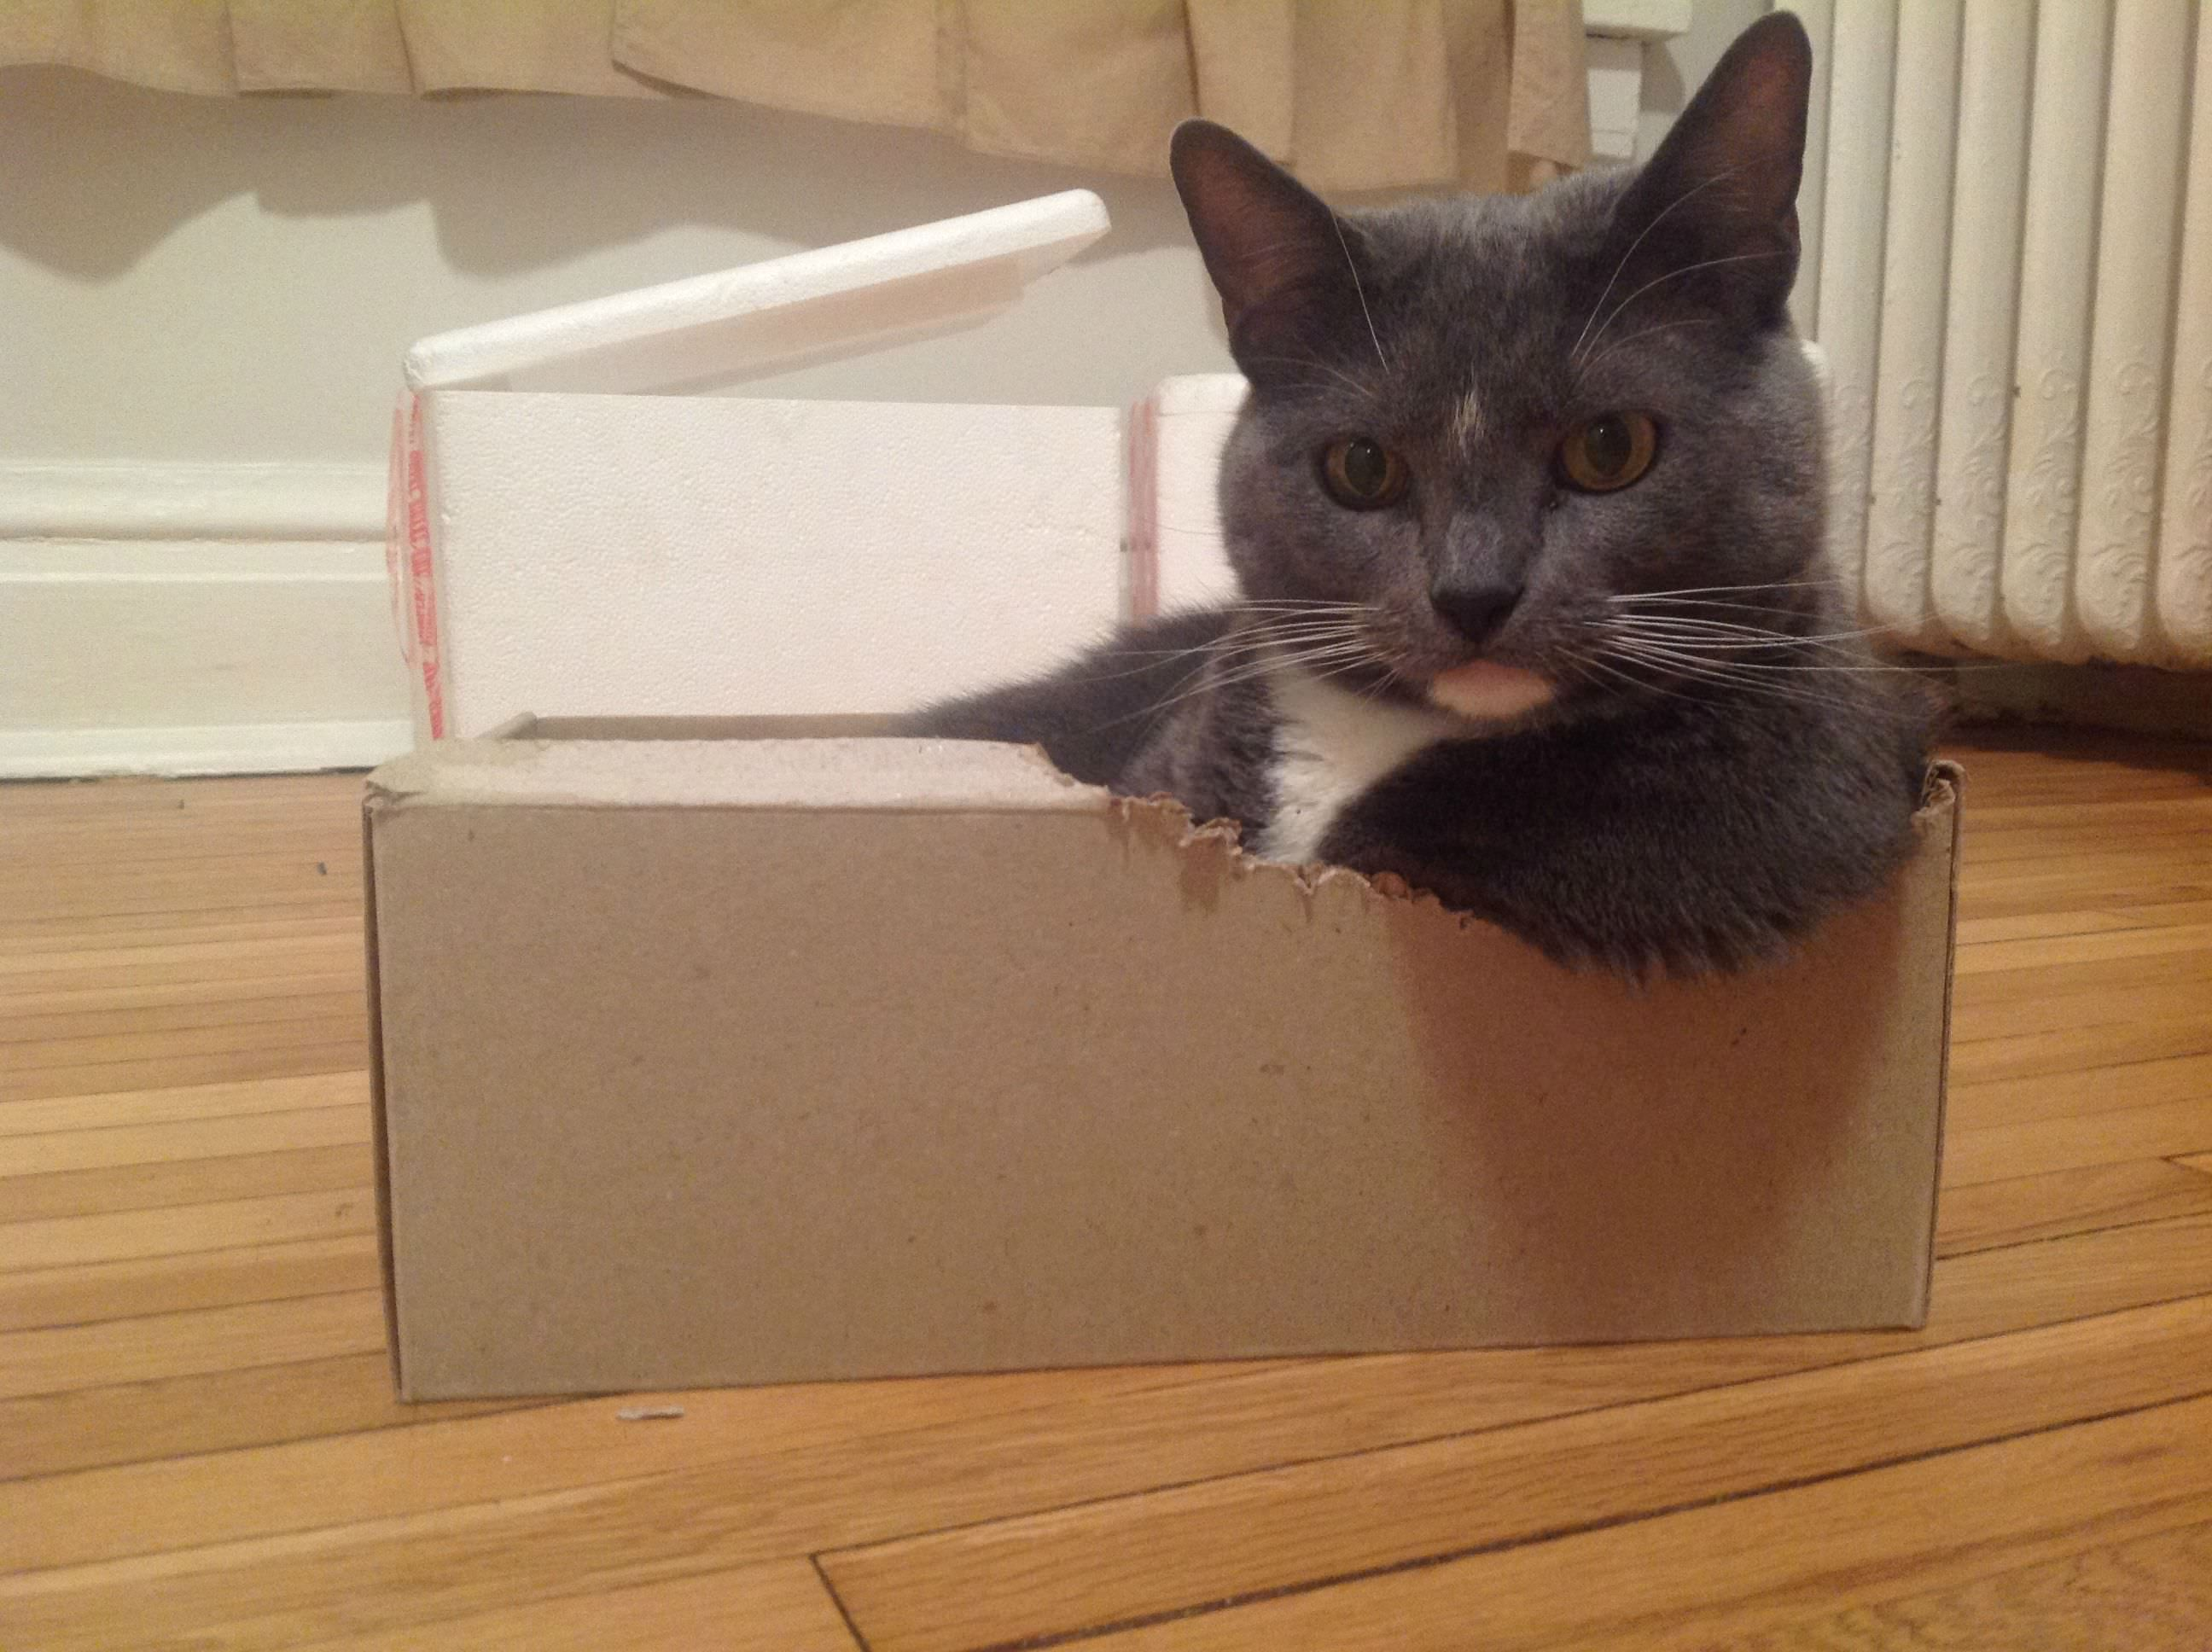 This cat chewed an armrest for herself in a box